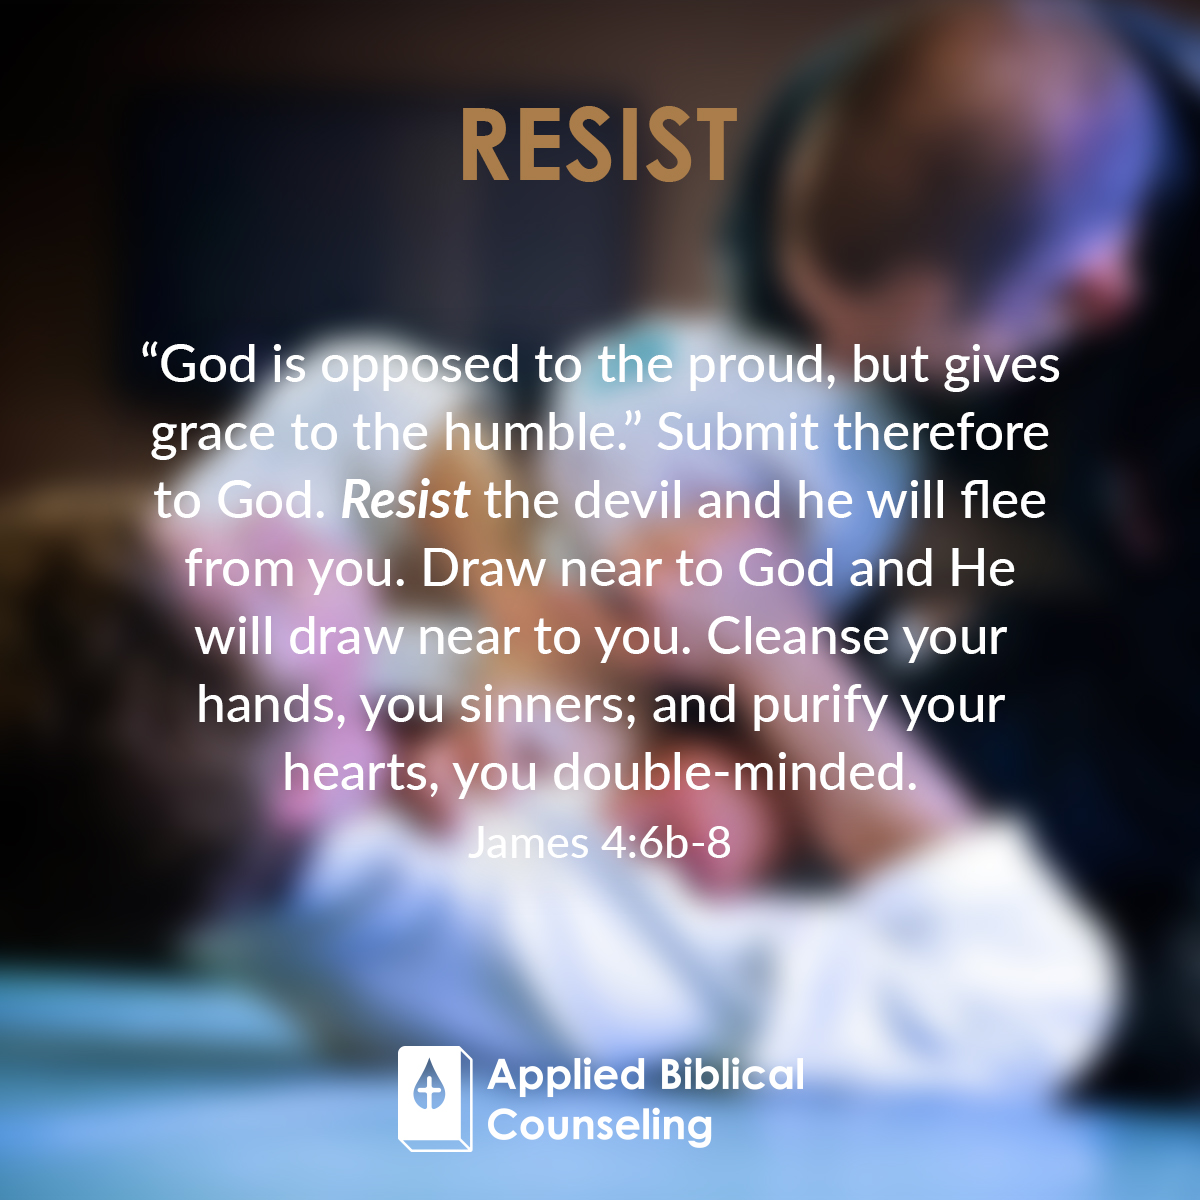 Resist Applied Biblical Counseling 2